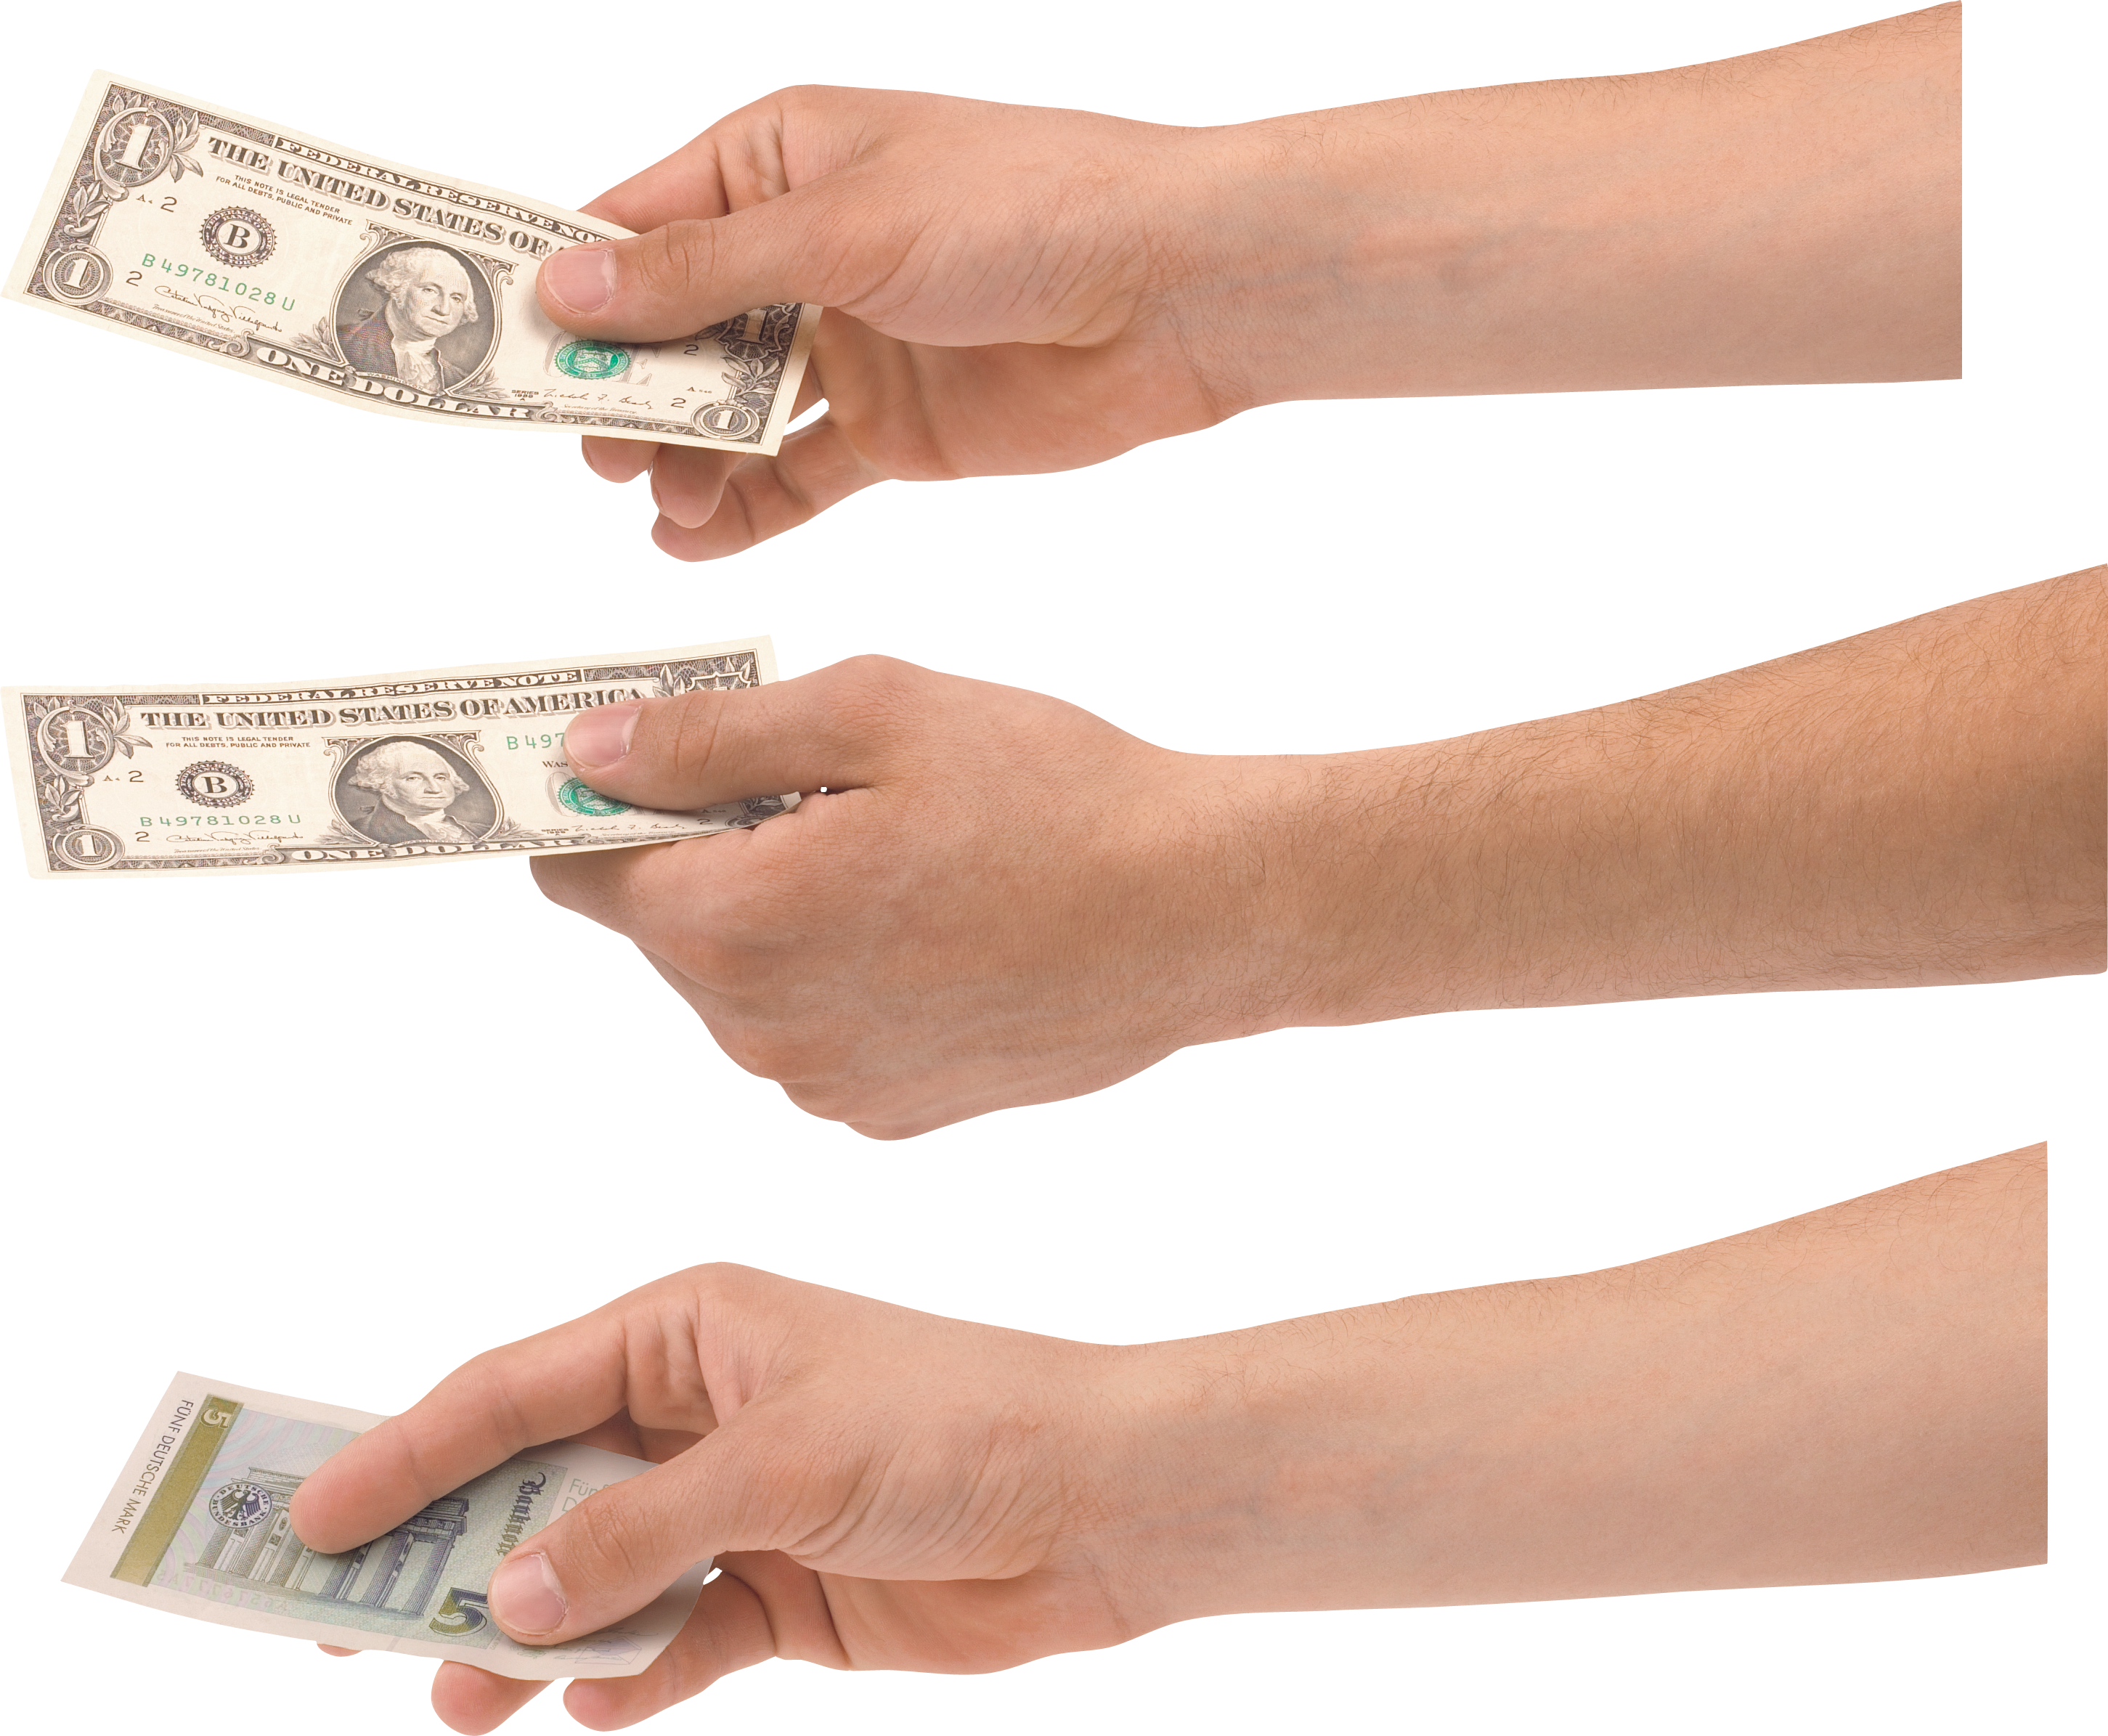 Cash in hand png. Holding money one isolated